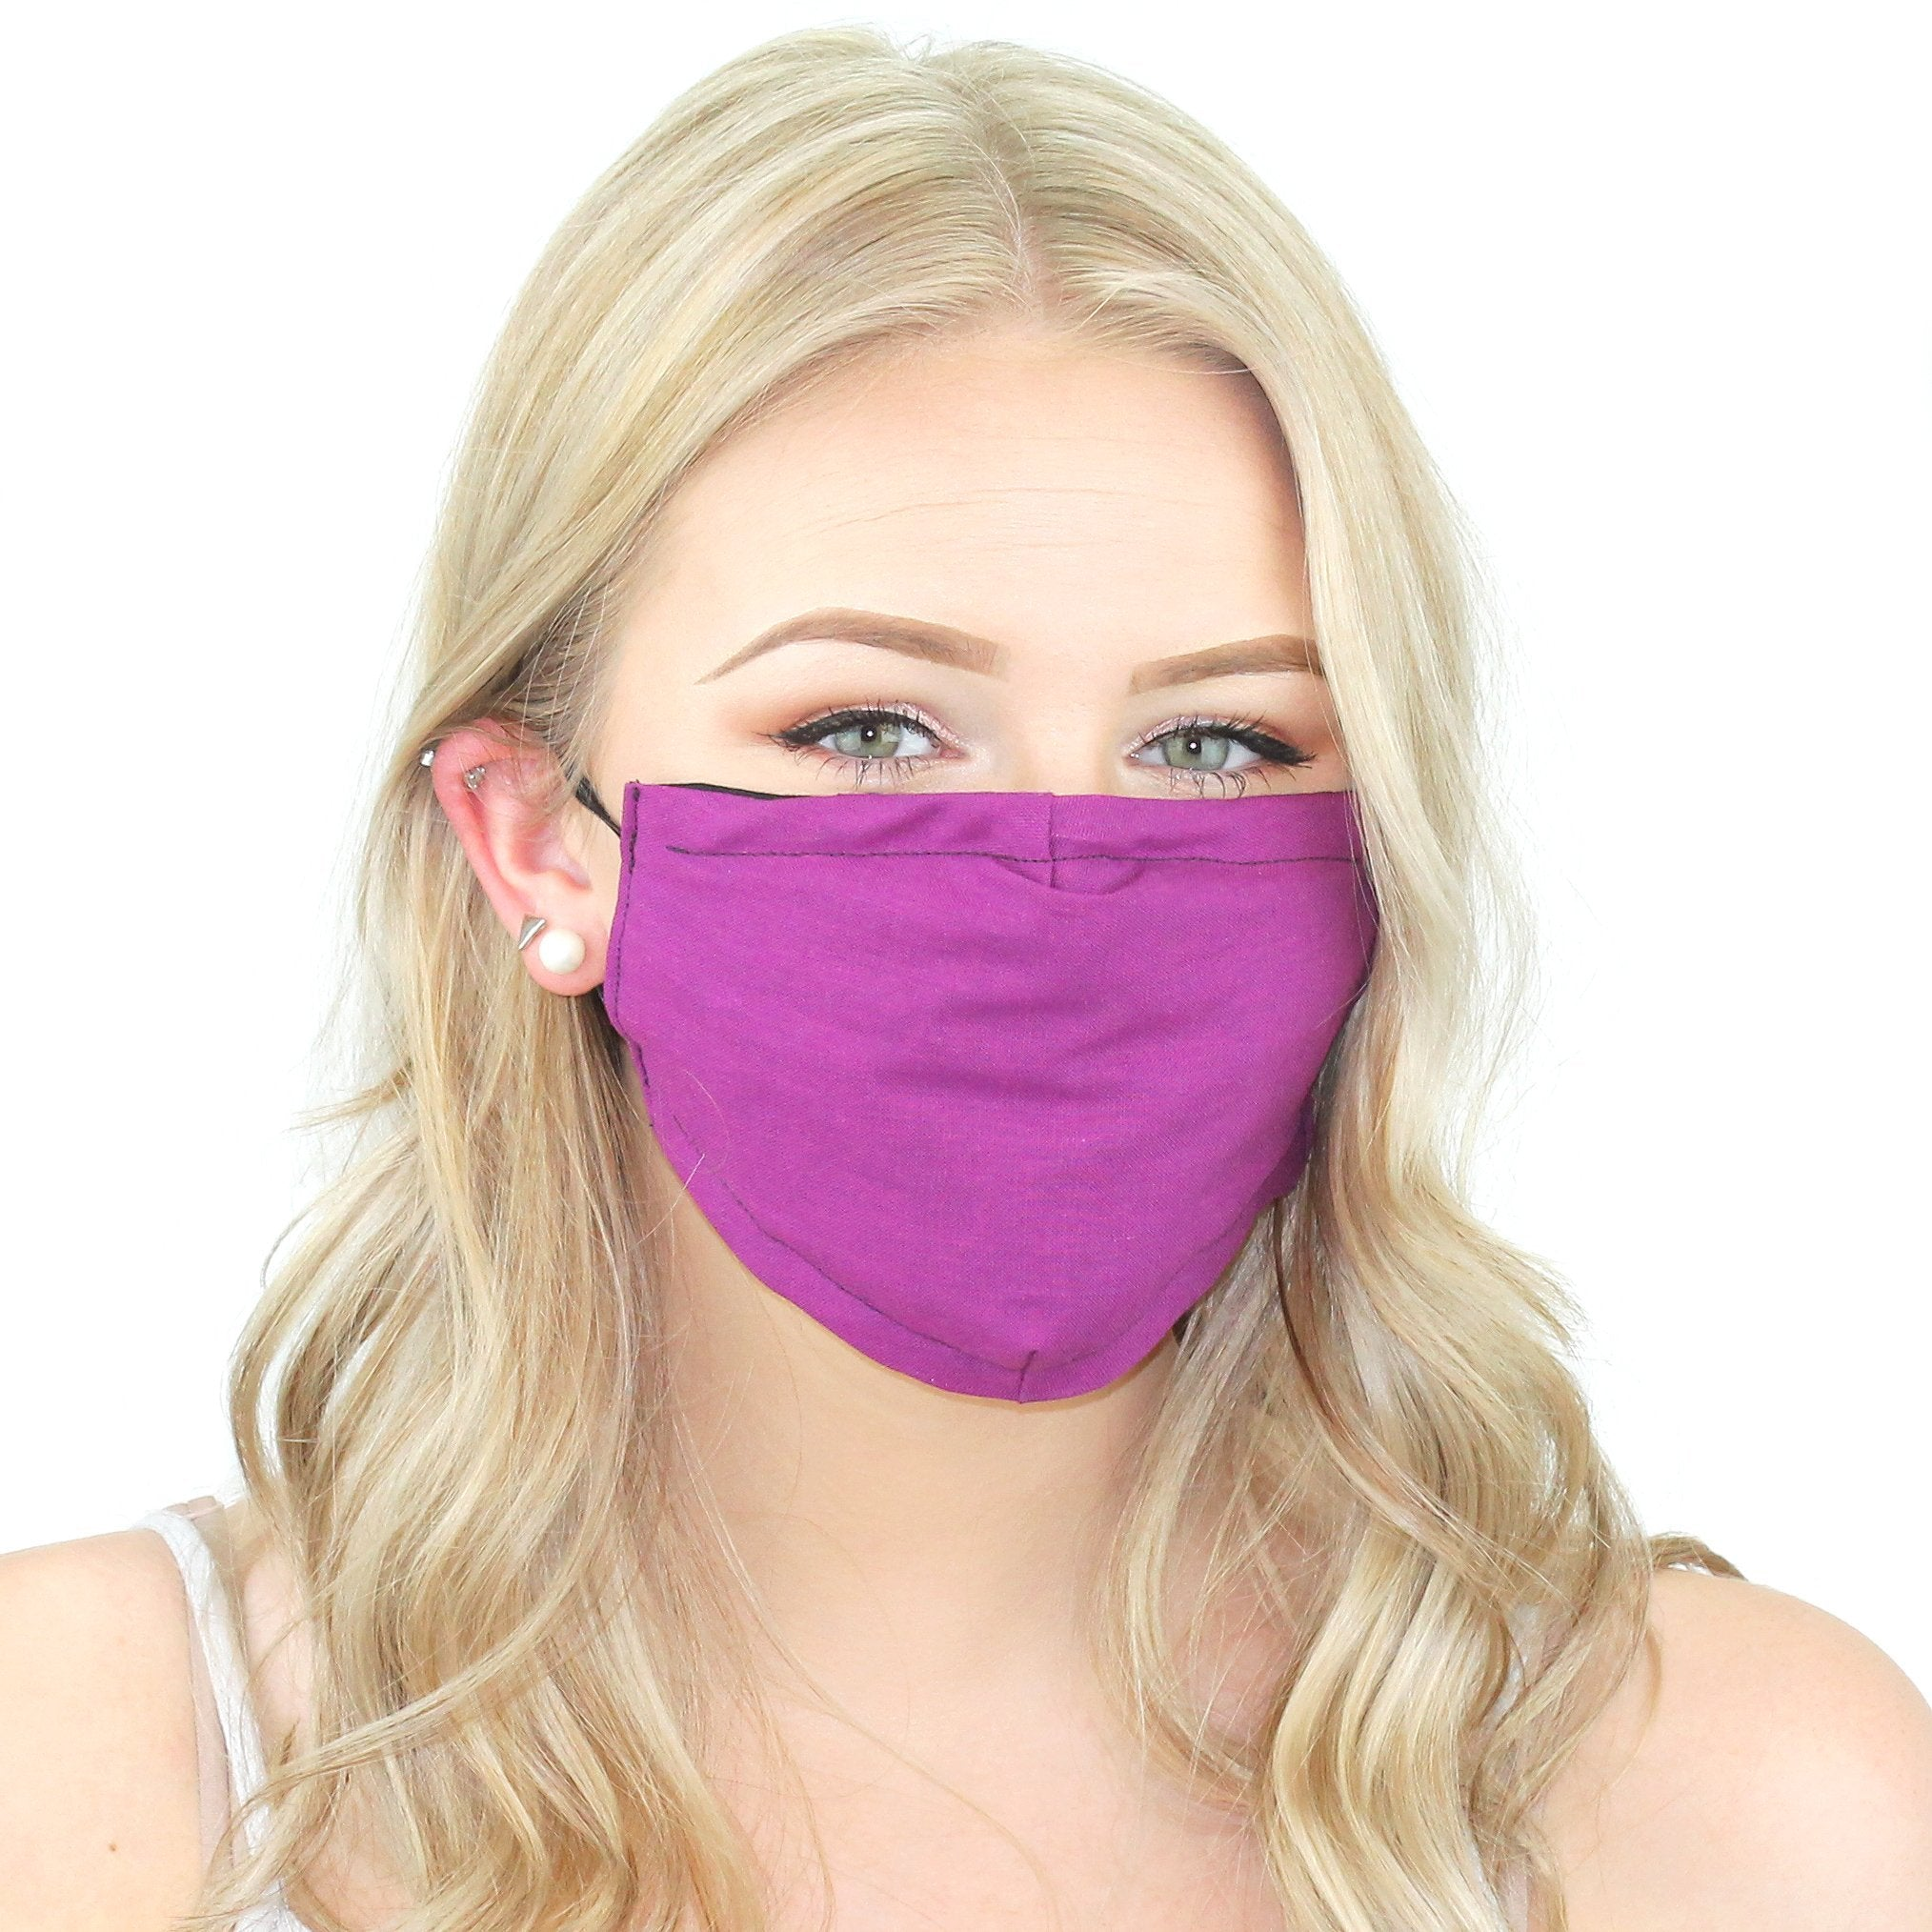 Reusable Cloth Face Mask With Pm2.5 Filter And Nose Bridge Fuschia Beauty & Health